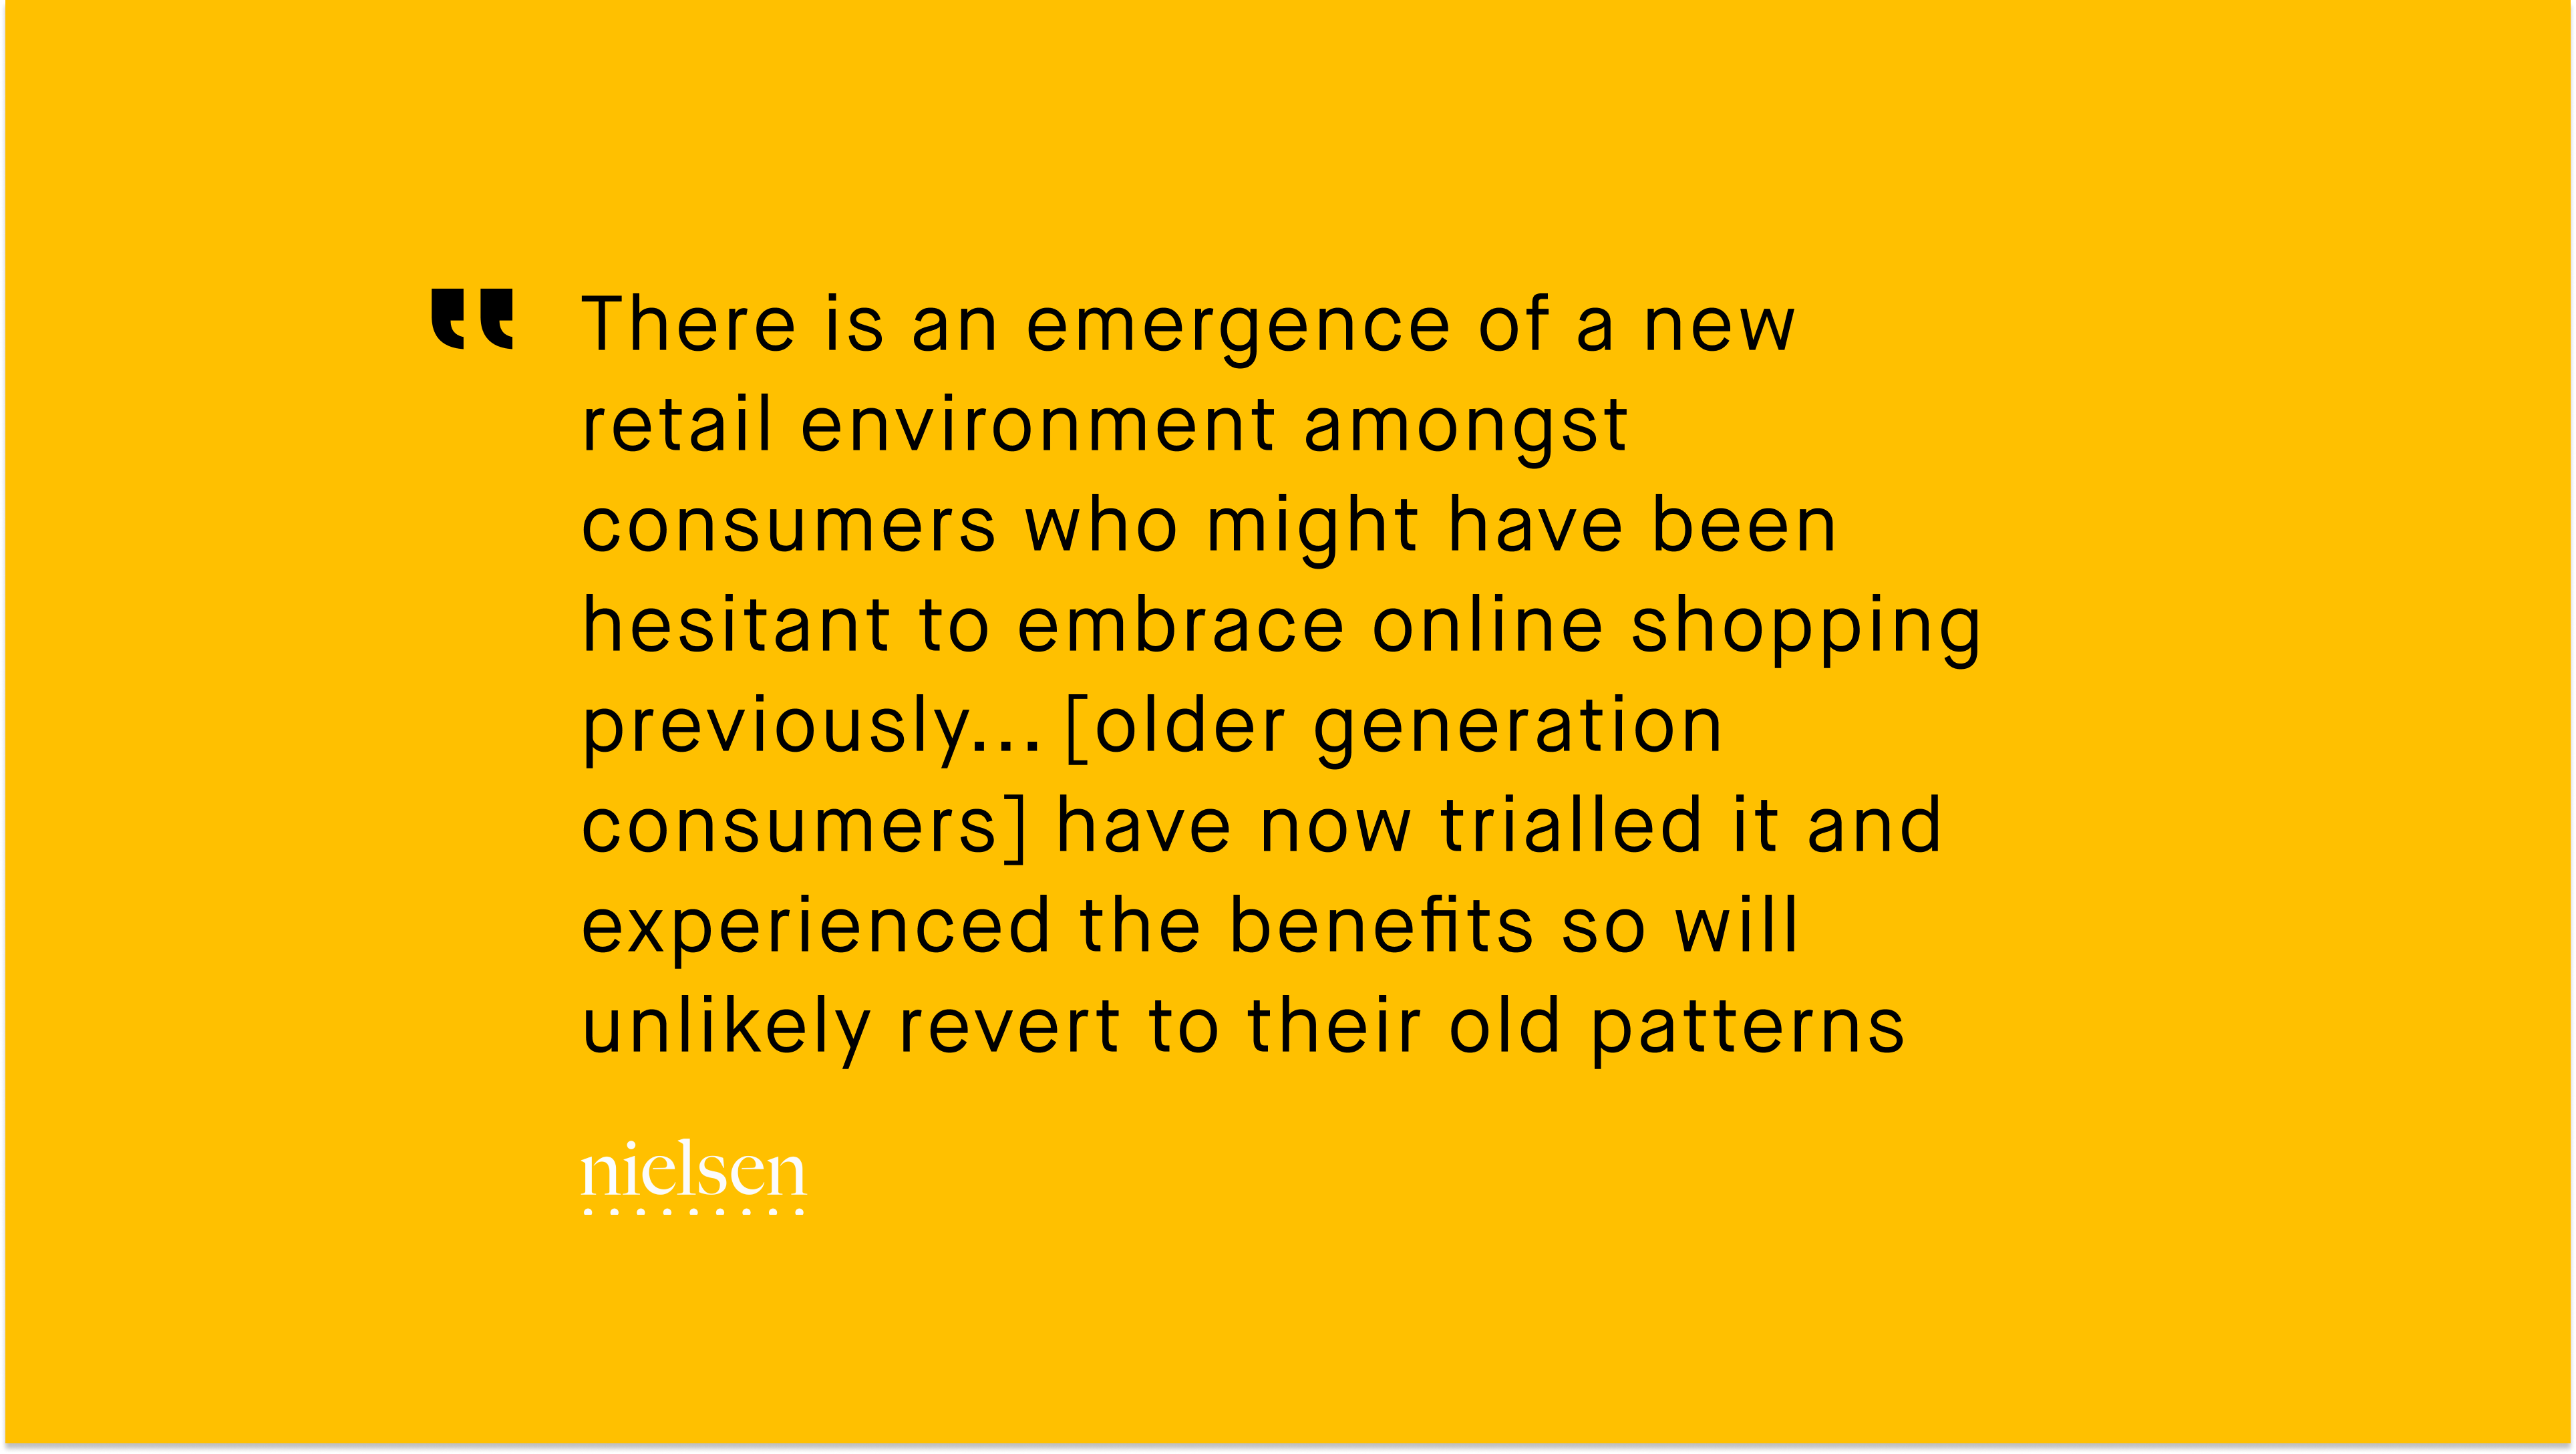 #paid_Nielson_There is an emergence of a new retail environment